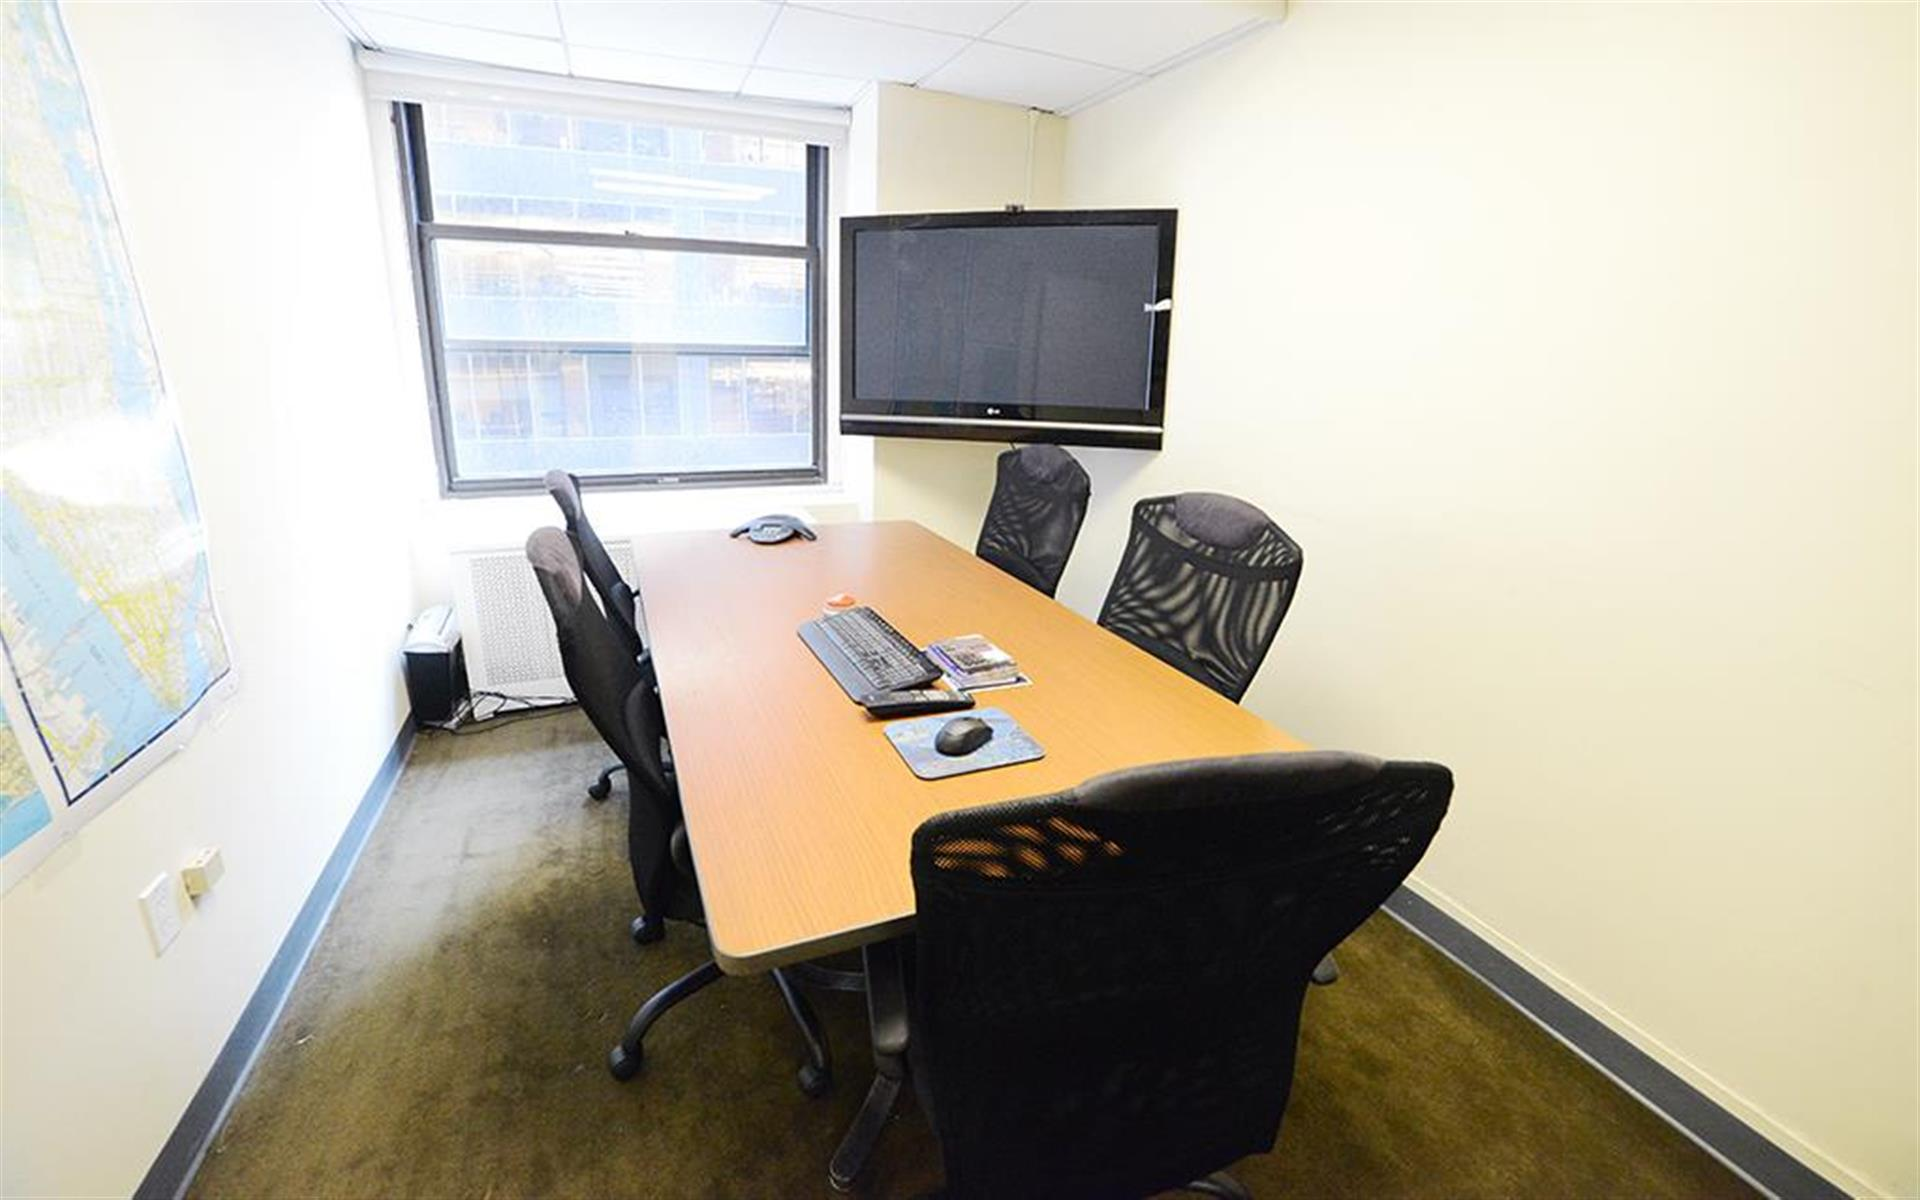 A&I Broadway Realty - 150 Broadway, NYC - Conference Room w/ Monitor